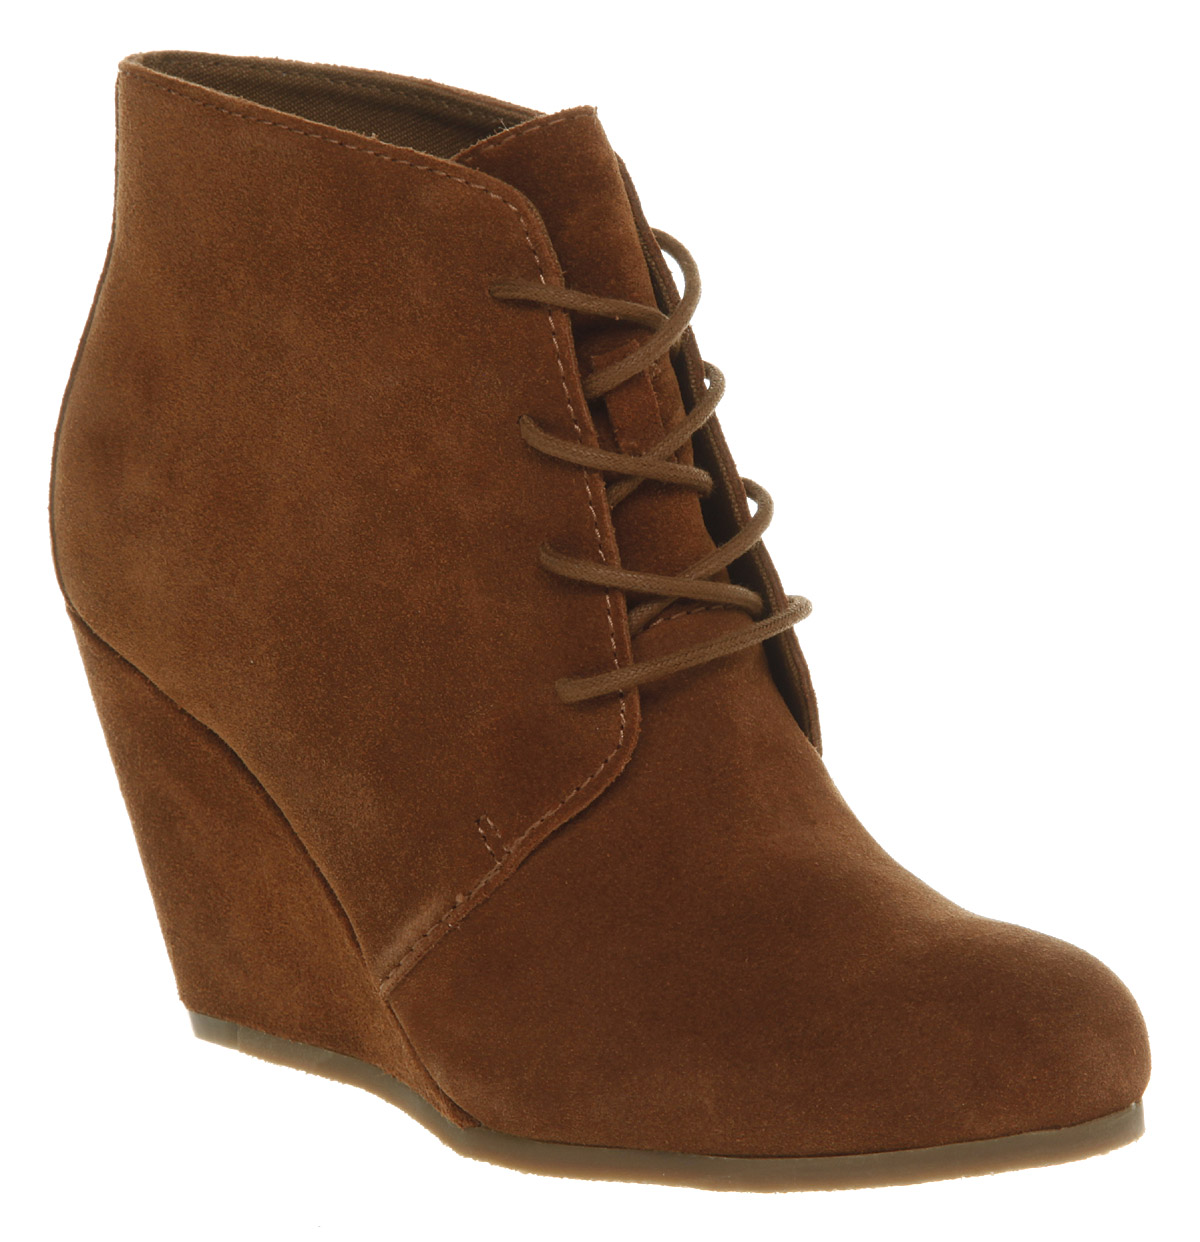 A pair of lace-up wedge booties that stop at the ankle offer plenty of height and comfort without overwhelming the style of your pants and long skirts. Choose a pair in chestnut with a textile upper that adds a little color to your otherwise dark attire or darken up your holiday flair with the help of some black suede wedge lace-up boots with.